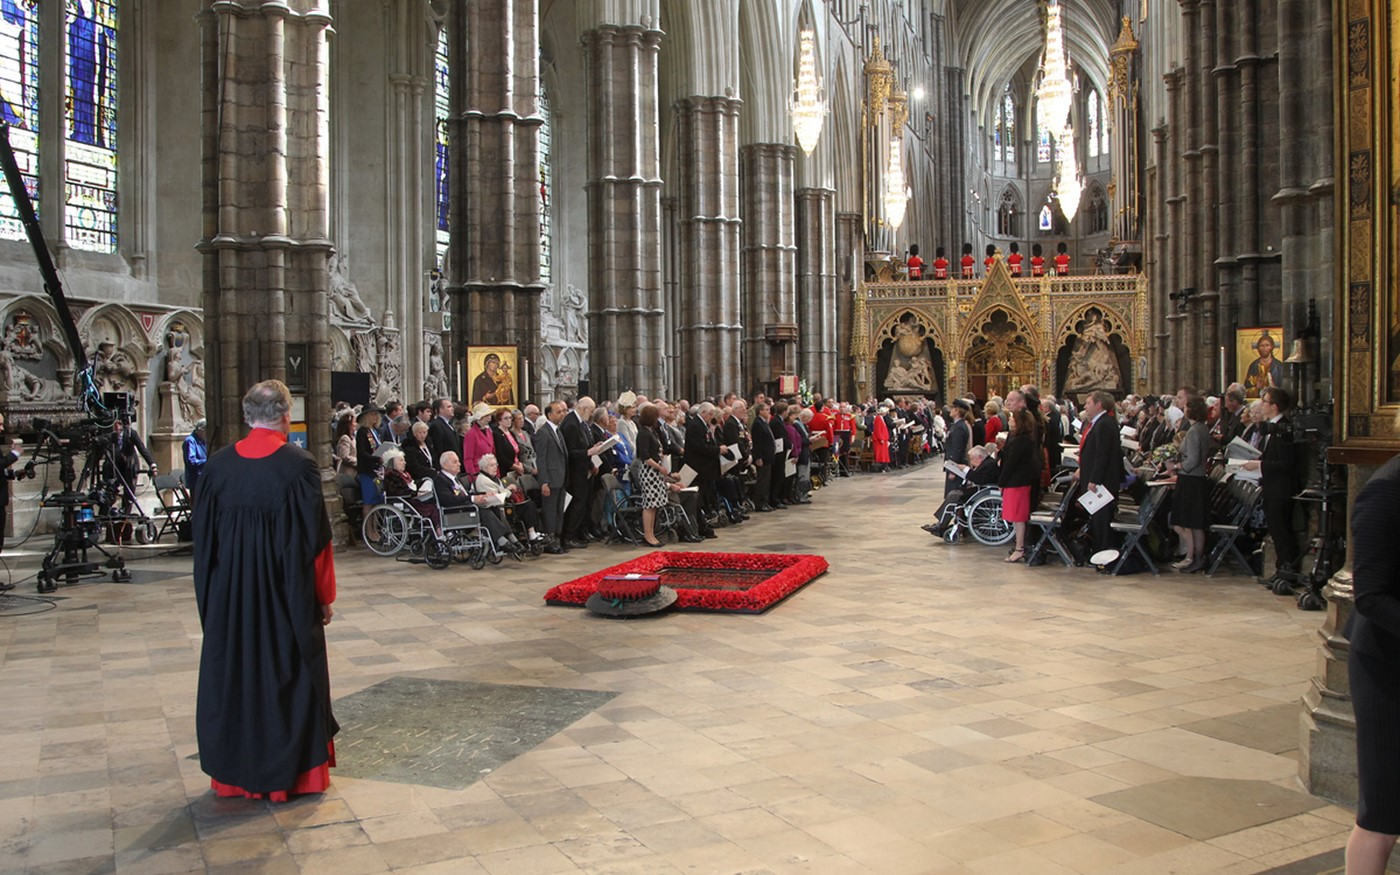 The service begins with a bidding from The Dean of Westminster